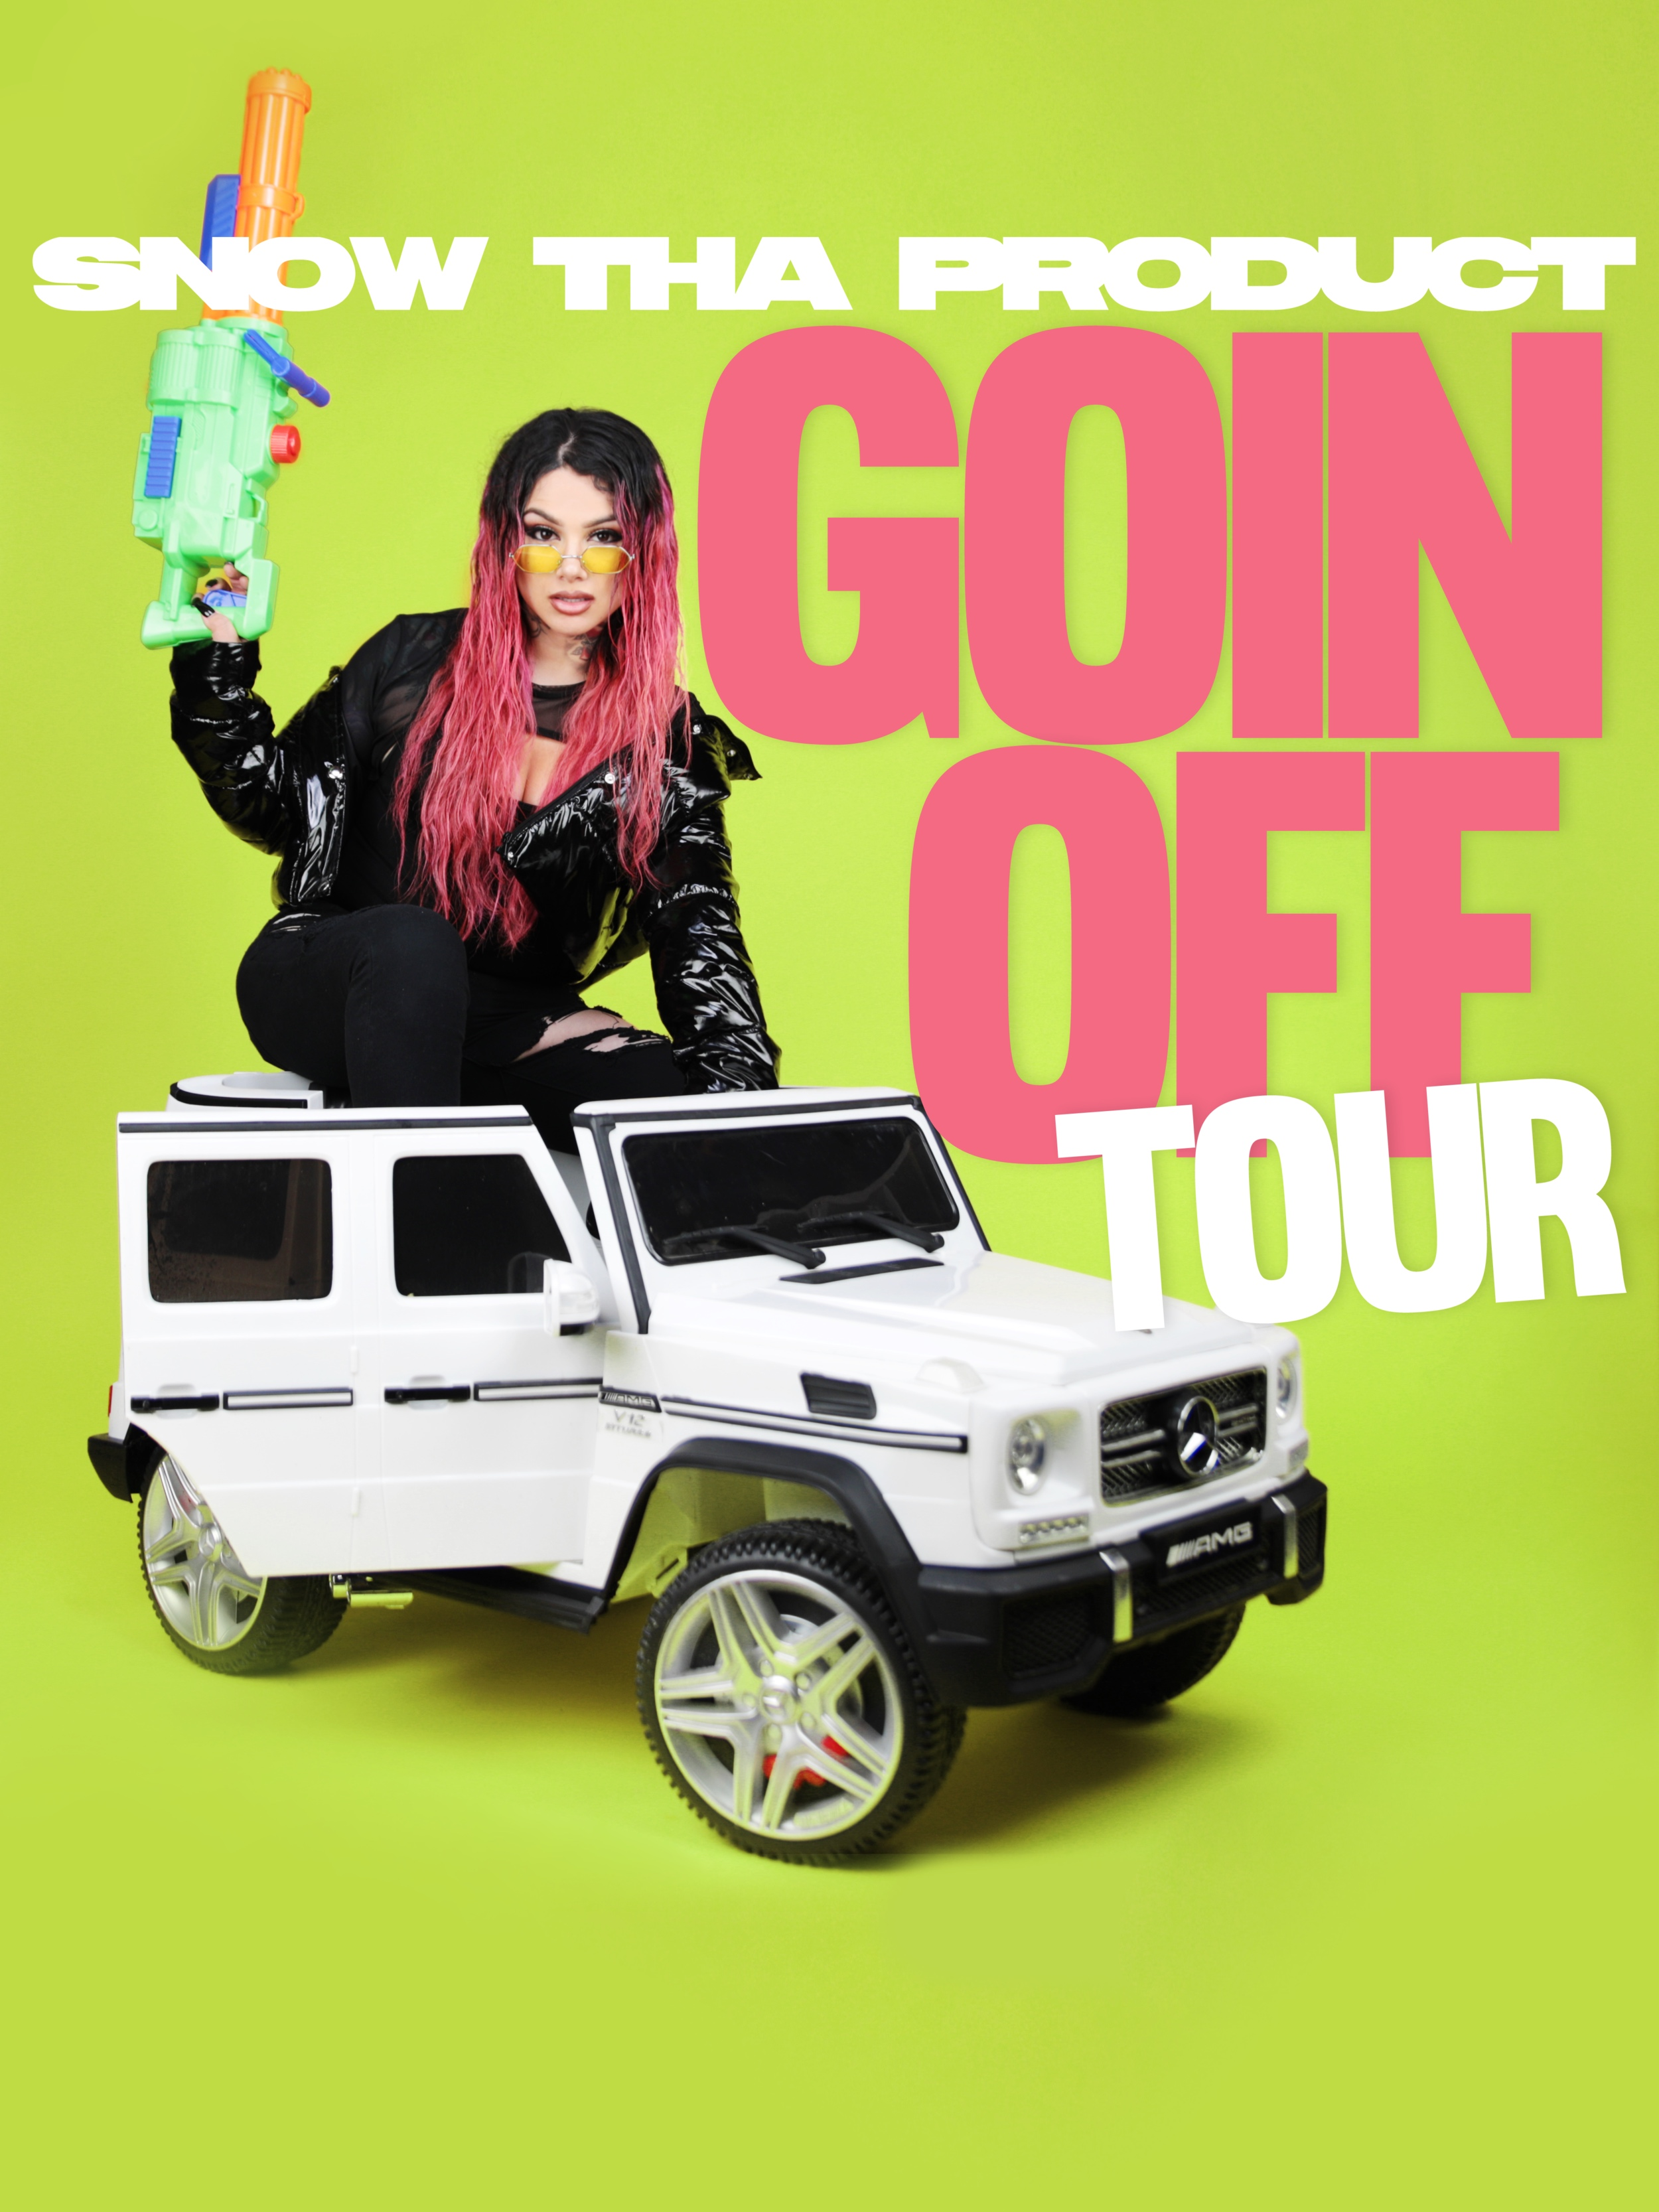 goin+off+tour+artwork+final+.jpg